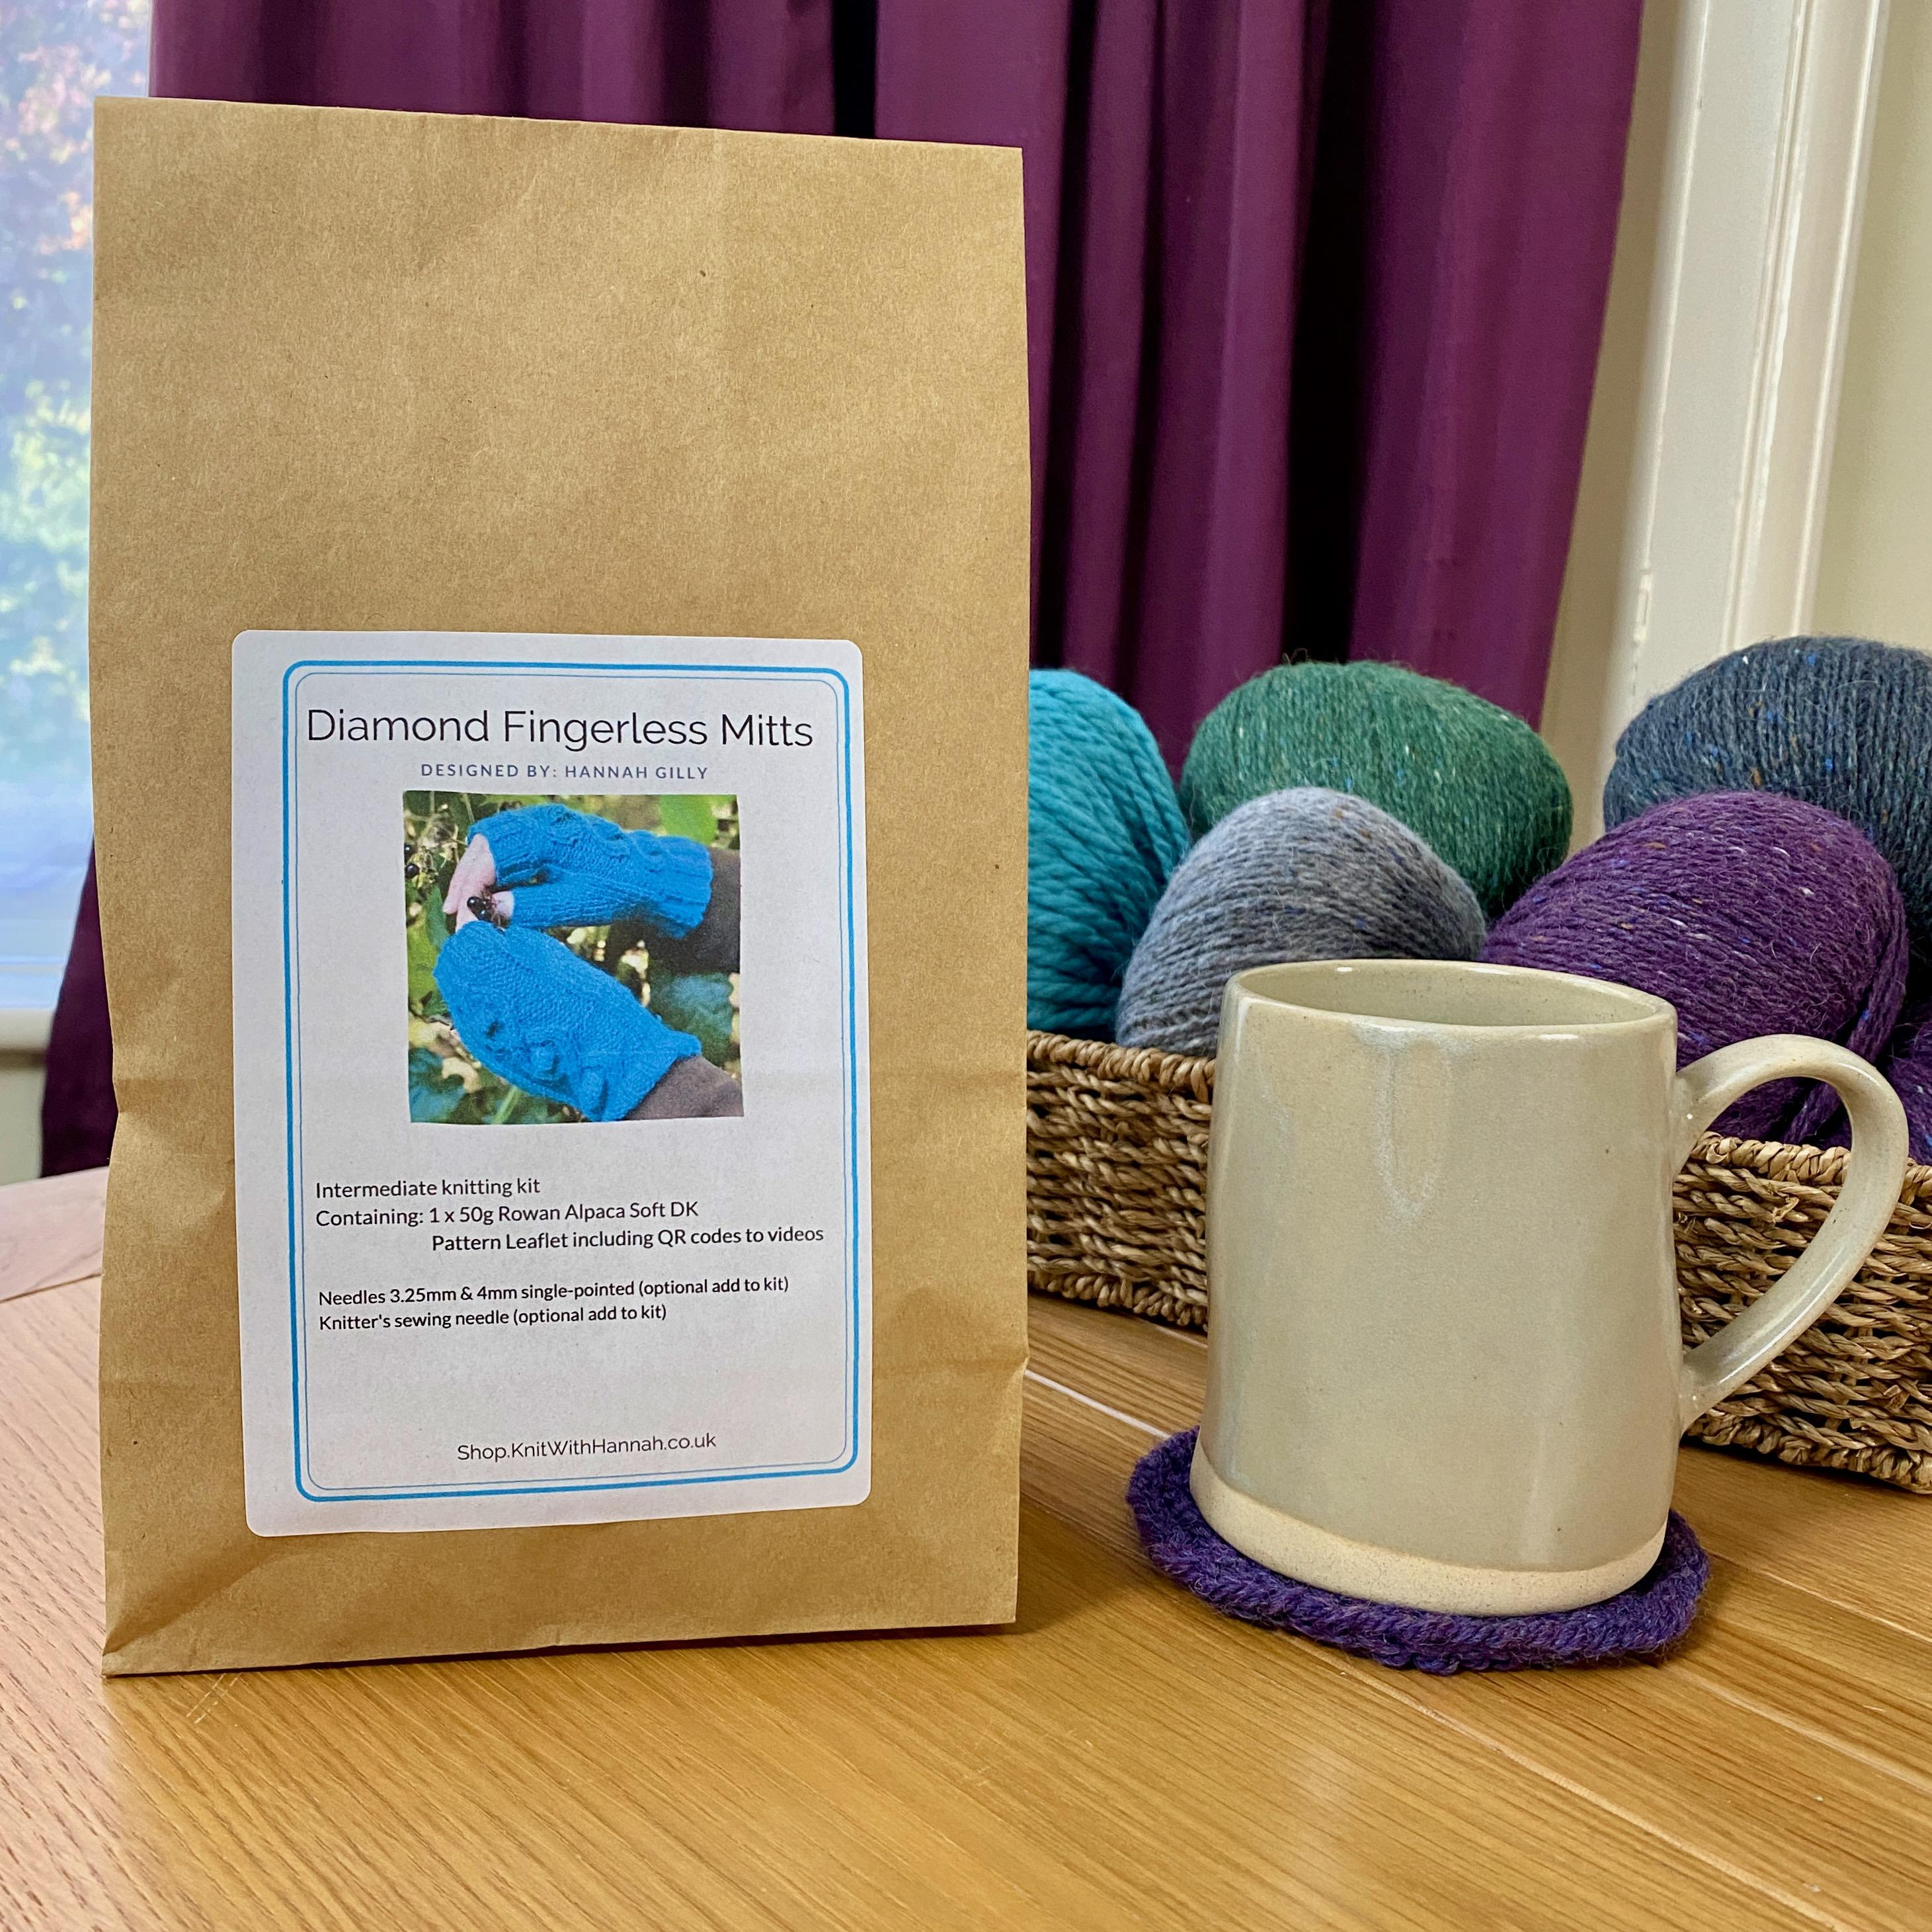 closed knitting kit, in paper bag with cup of tea on wooden table